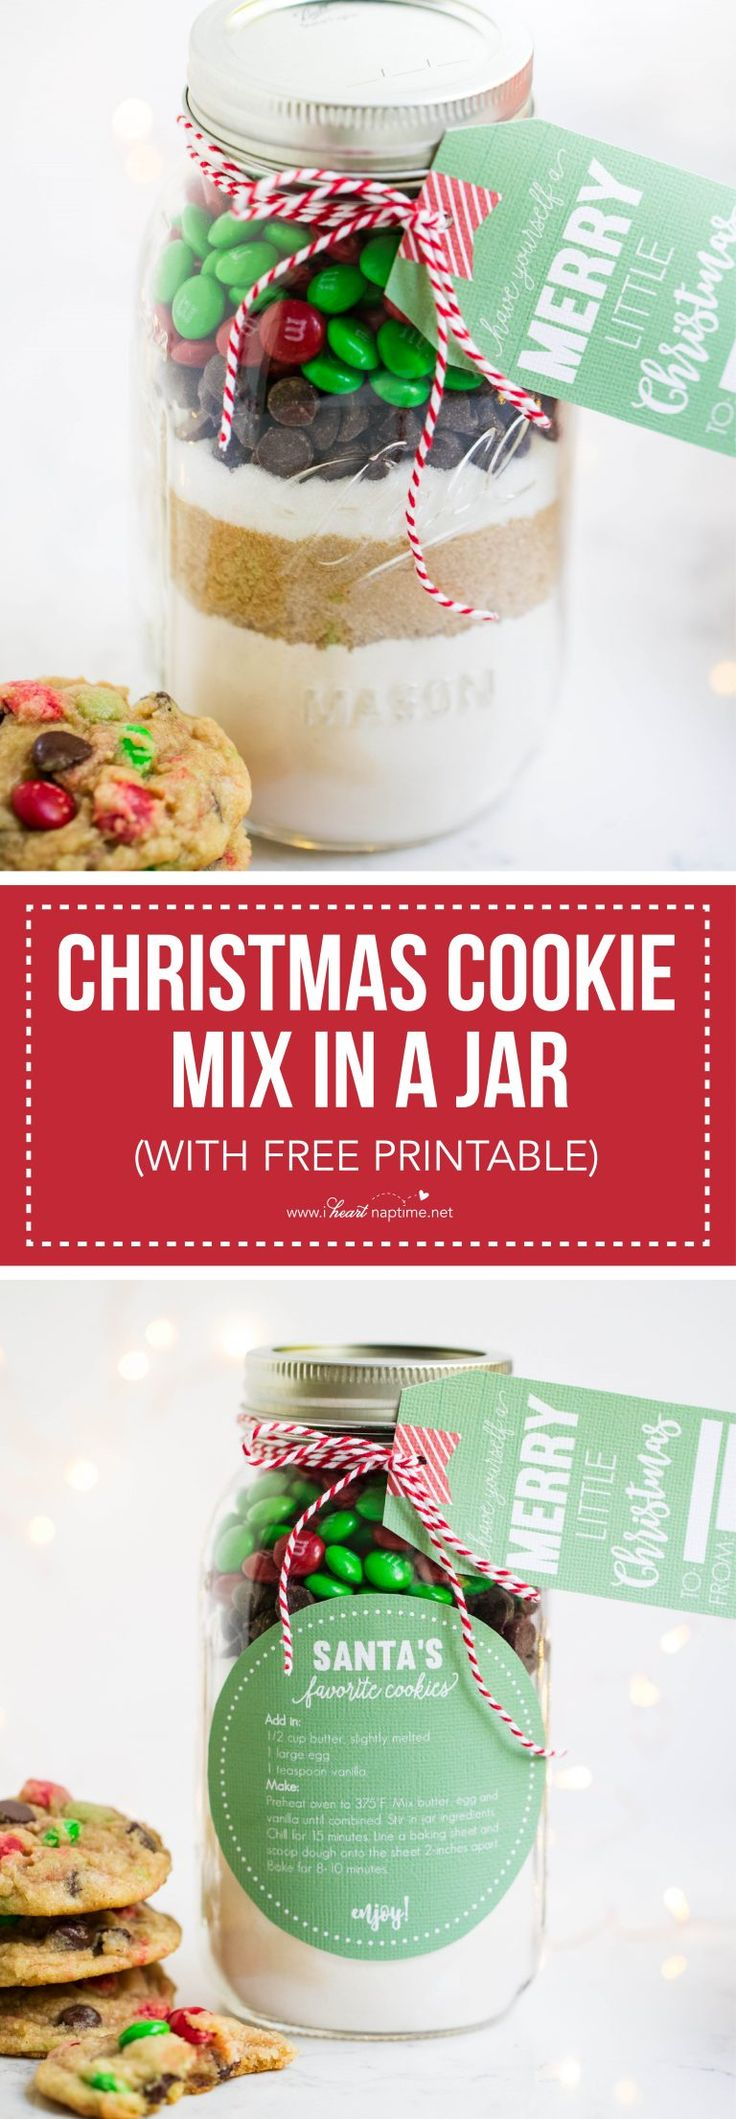 Layered cookie mix in a jar recipe that makes the perfect homemade Christmas gifts. These are always a big hit! Free printable tag and instructions included.